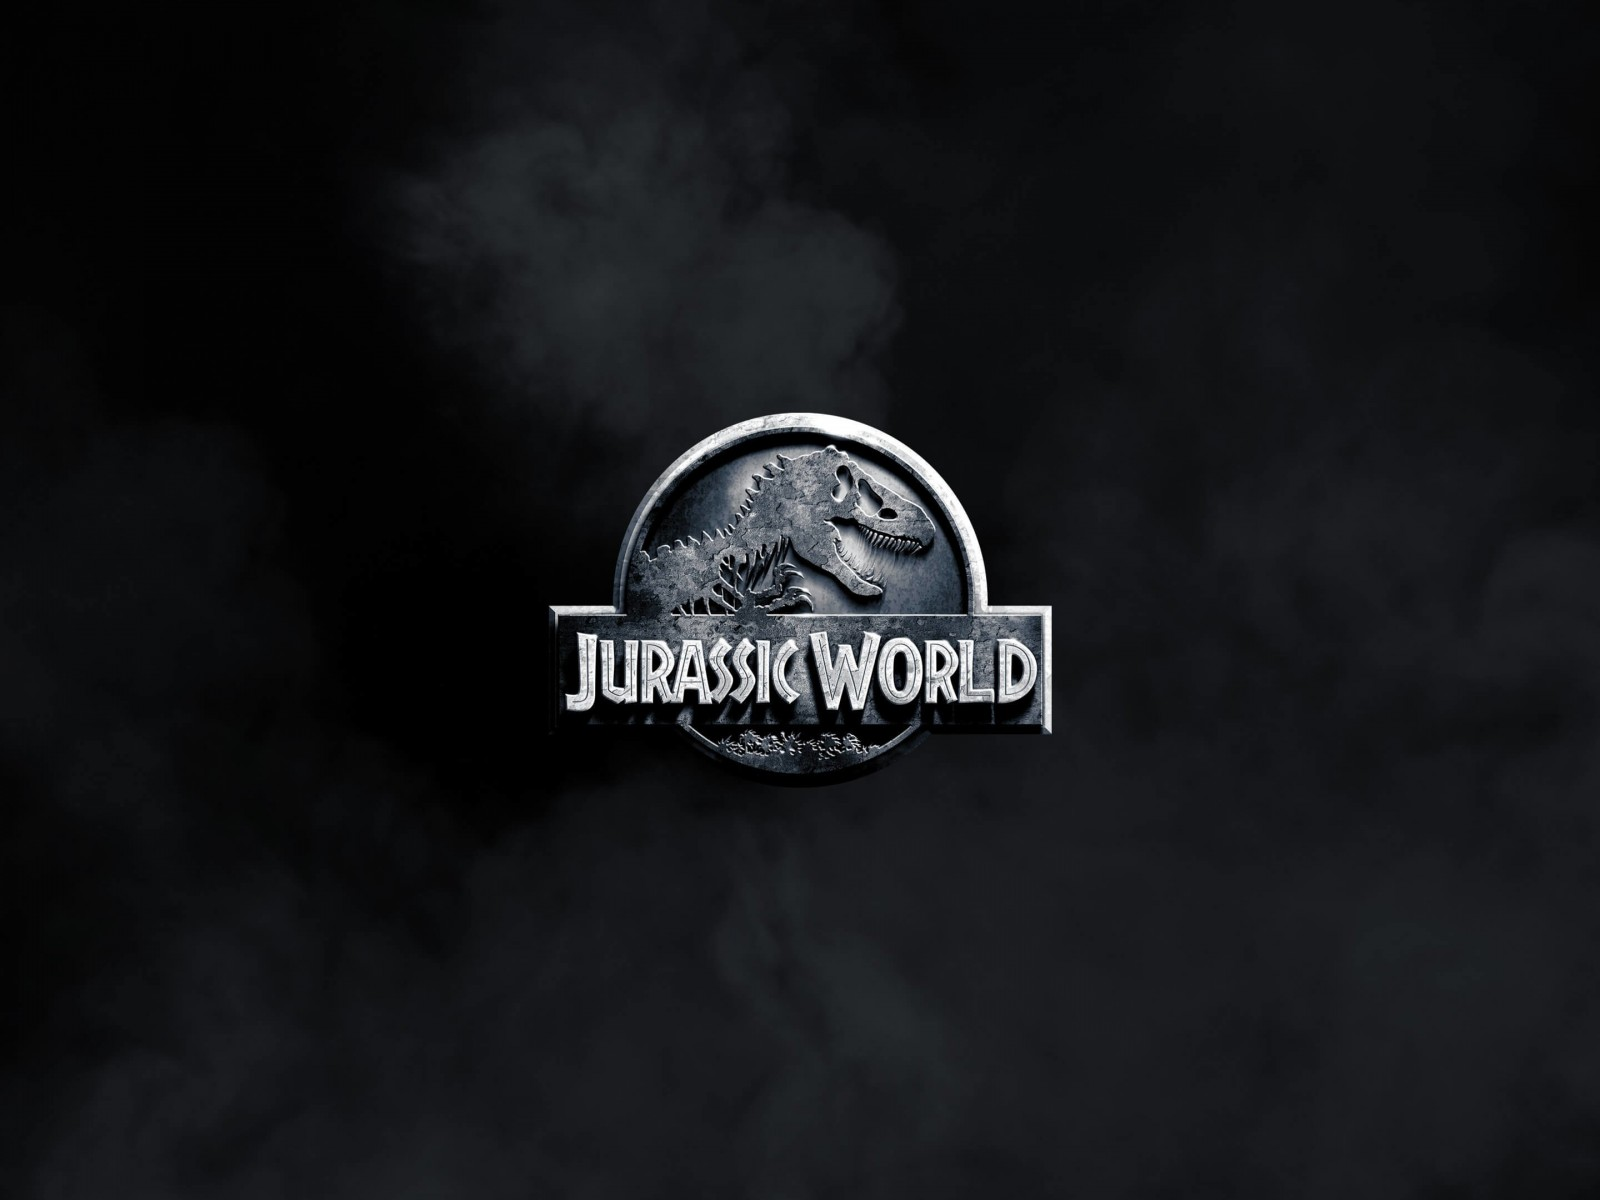 Jurassic World Wallpaper for Desktop 1600x1200